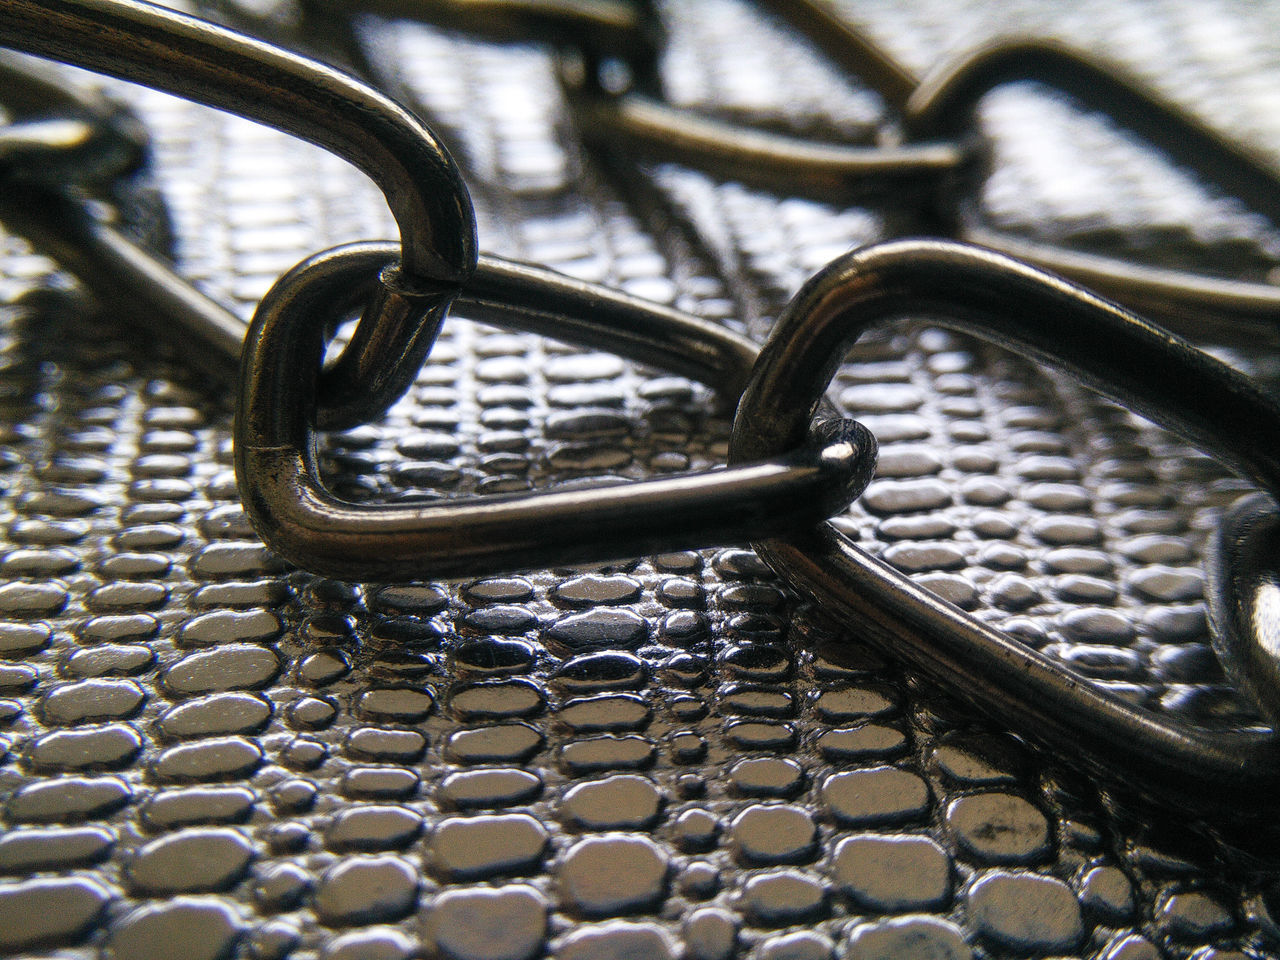 Metal Linked Chains Linked Link Chainlink Chain Backgrounds Closeup EyeEm Gallery EyeEmBestPics EyeEm Best Shots Macro Photography Close-up Macro Macro_captures No People Oneplusone